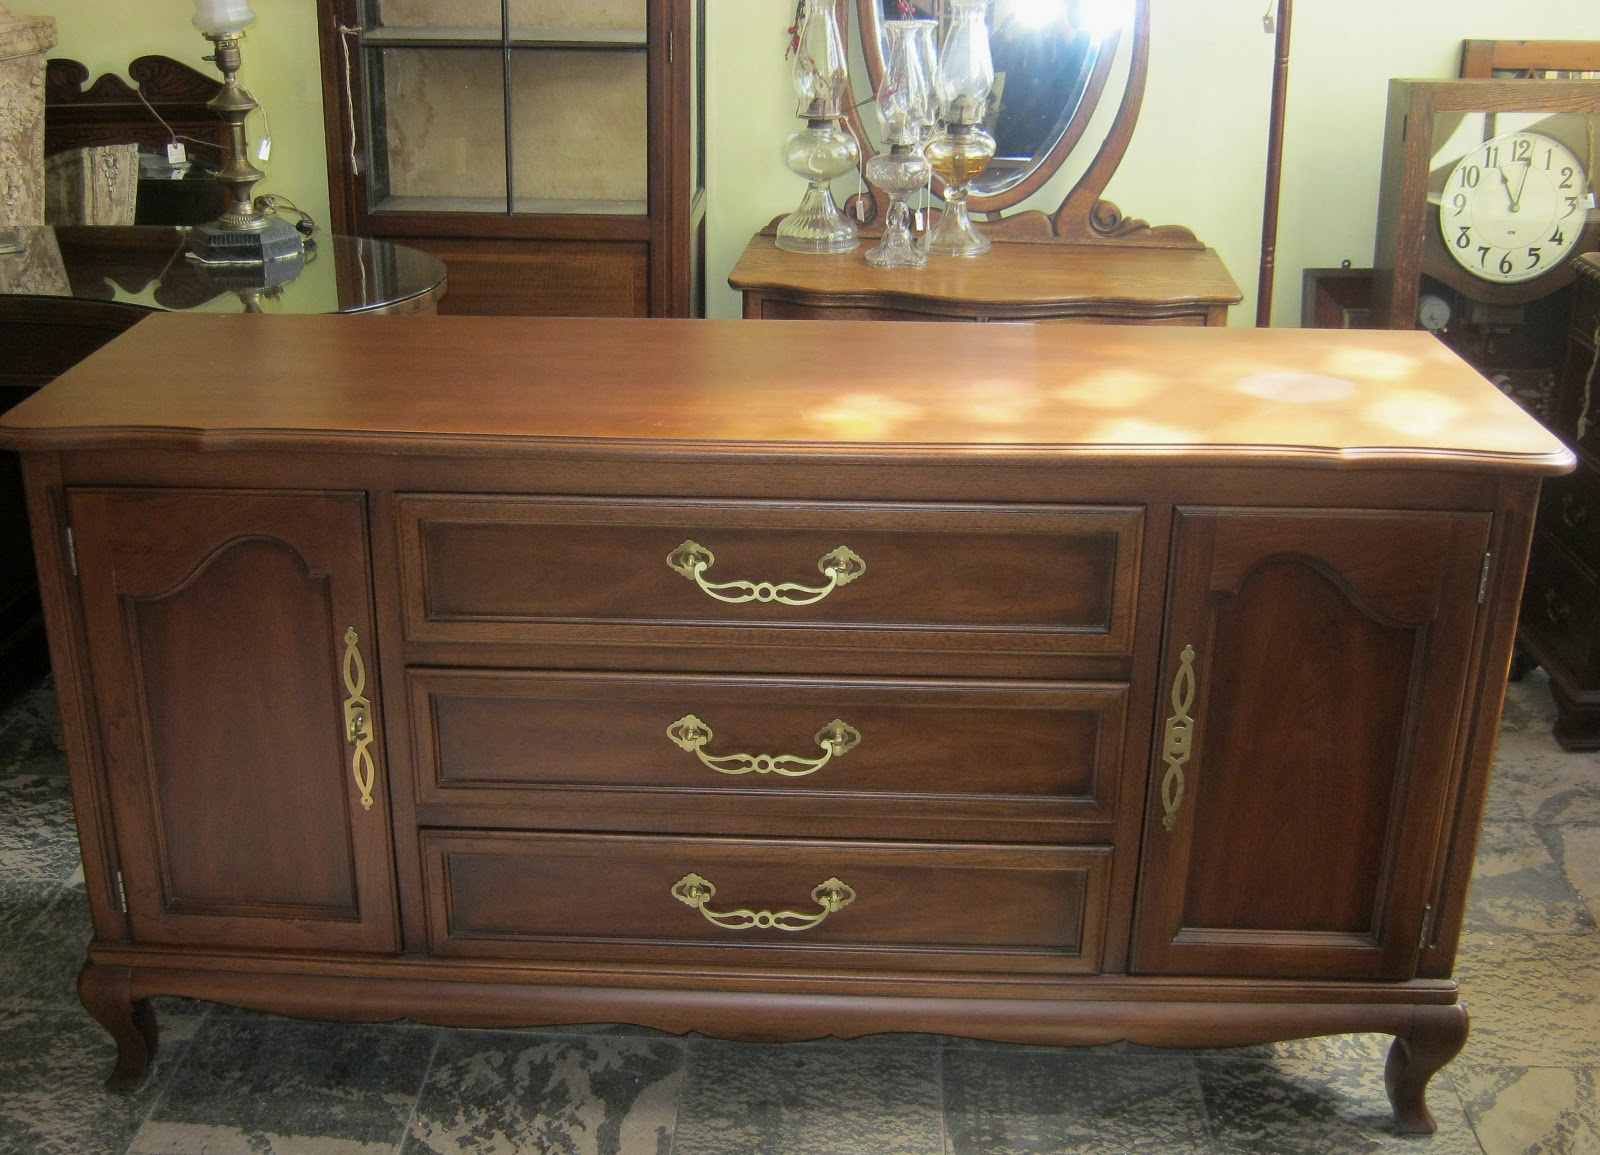 Funk gruven a z french provincial sideboard bathroom - French provincial bathroom vanities ...